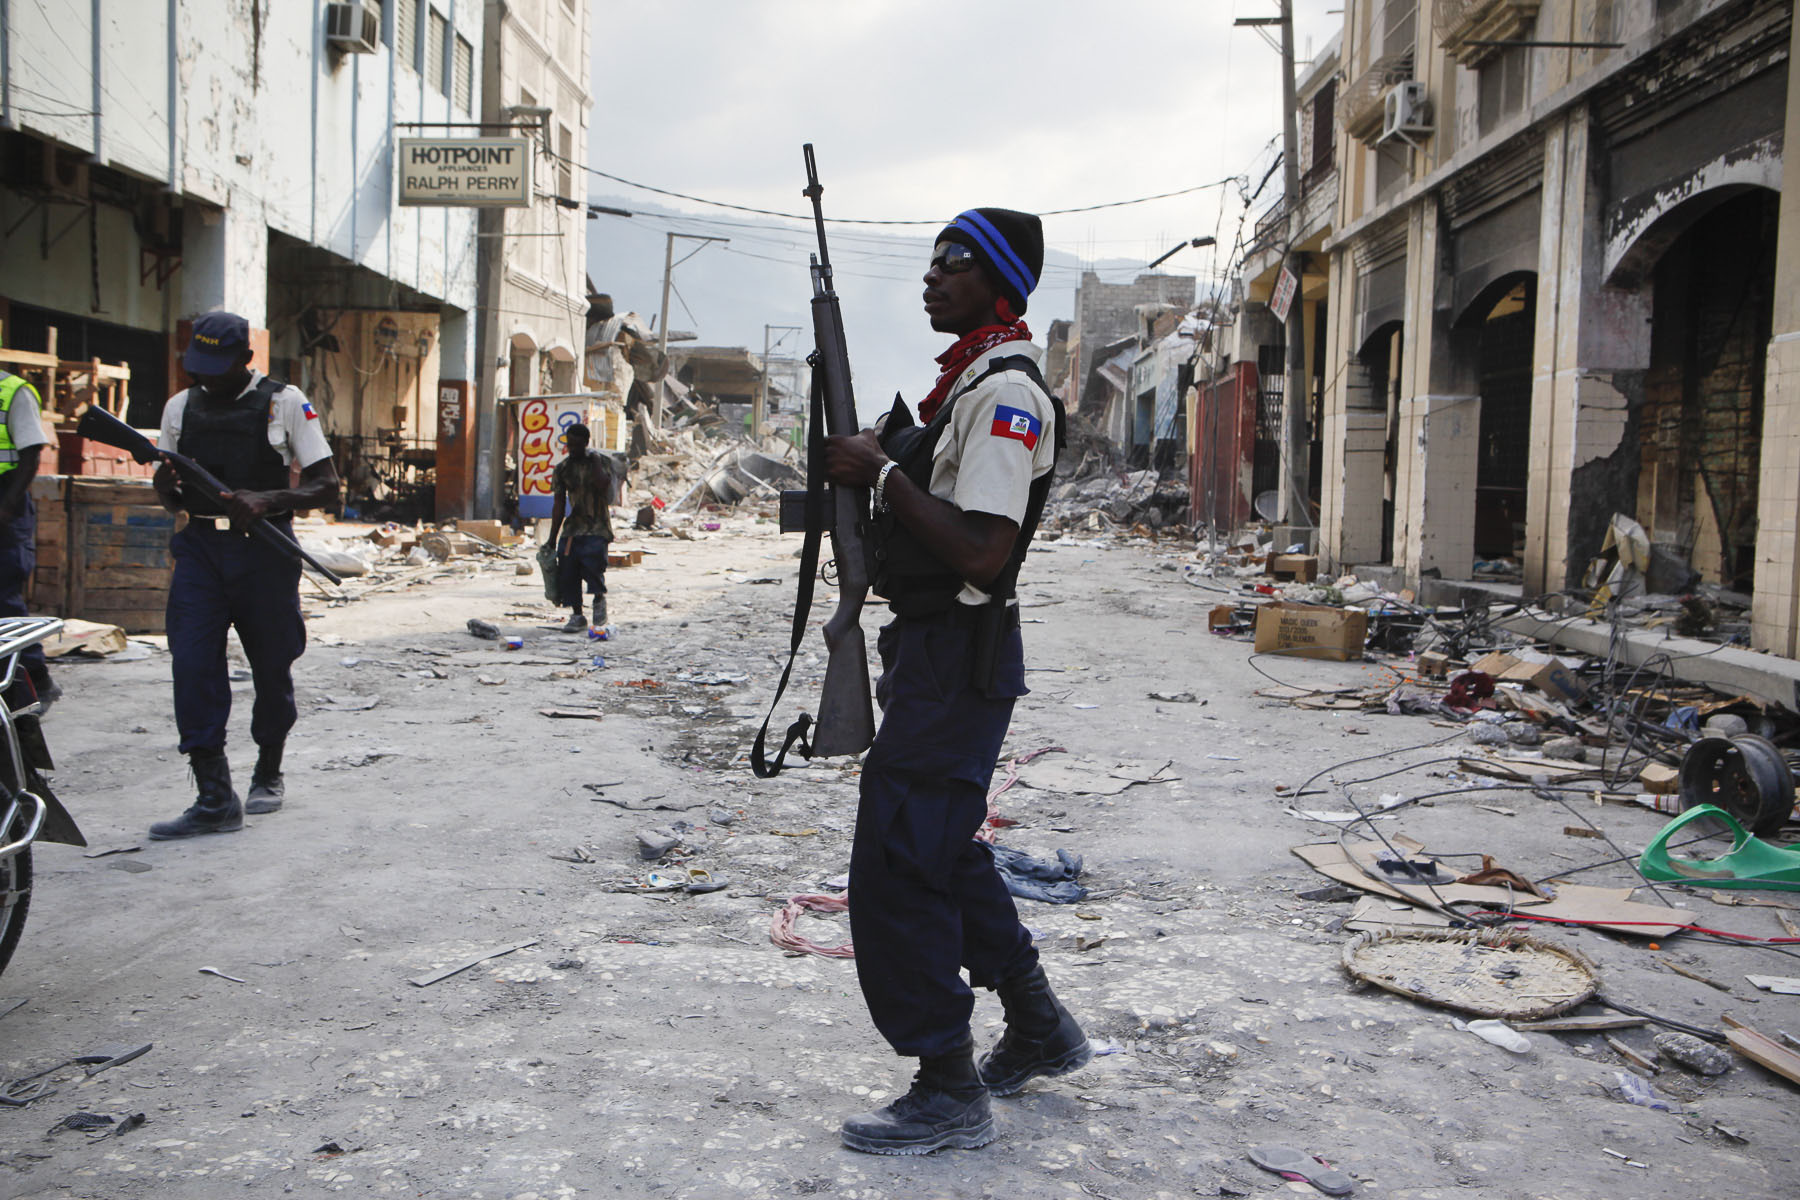 Haitian police stops looting downtown on January 24, 2010